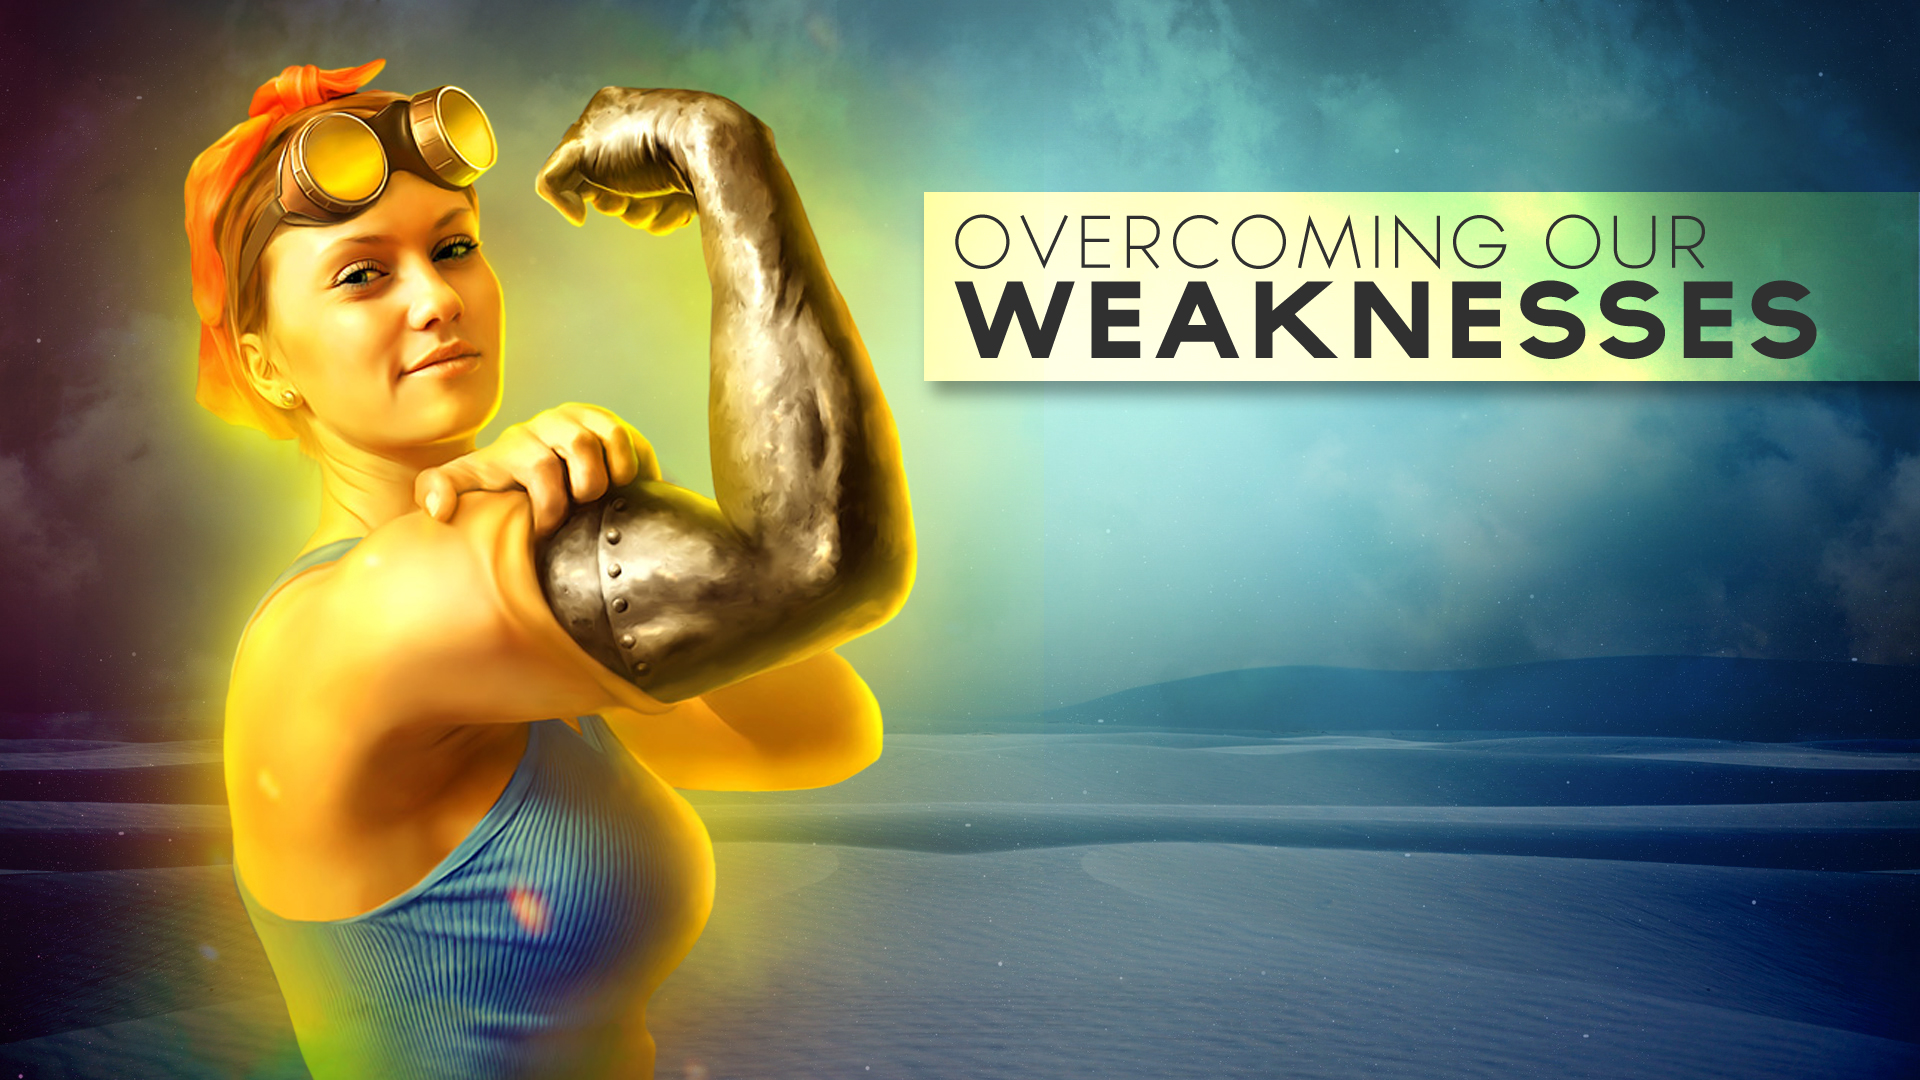 Overcoming Our Weaknesses